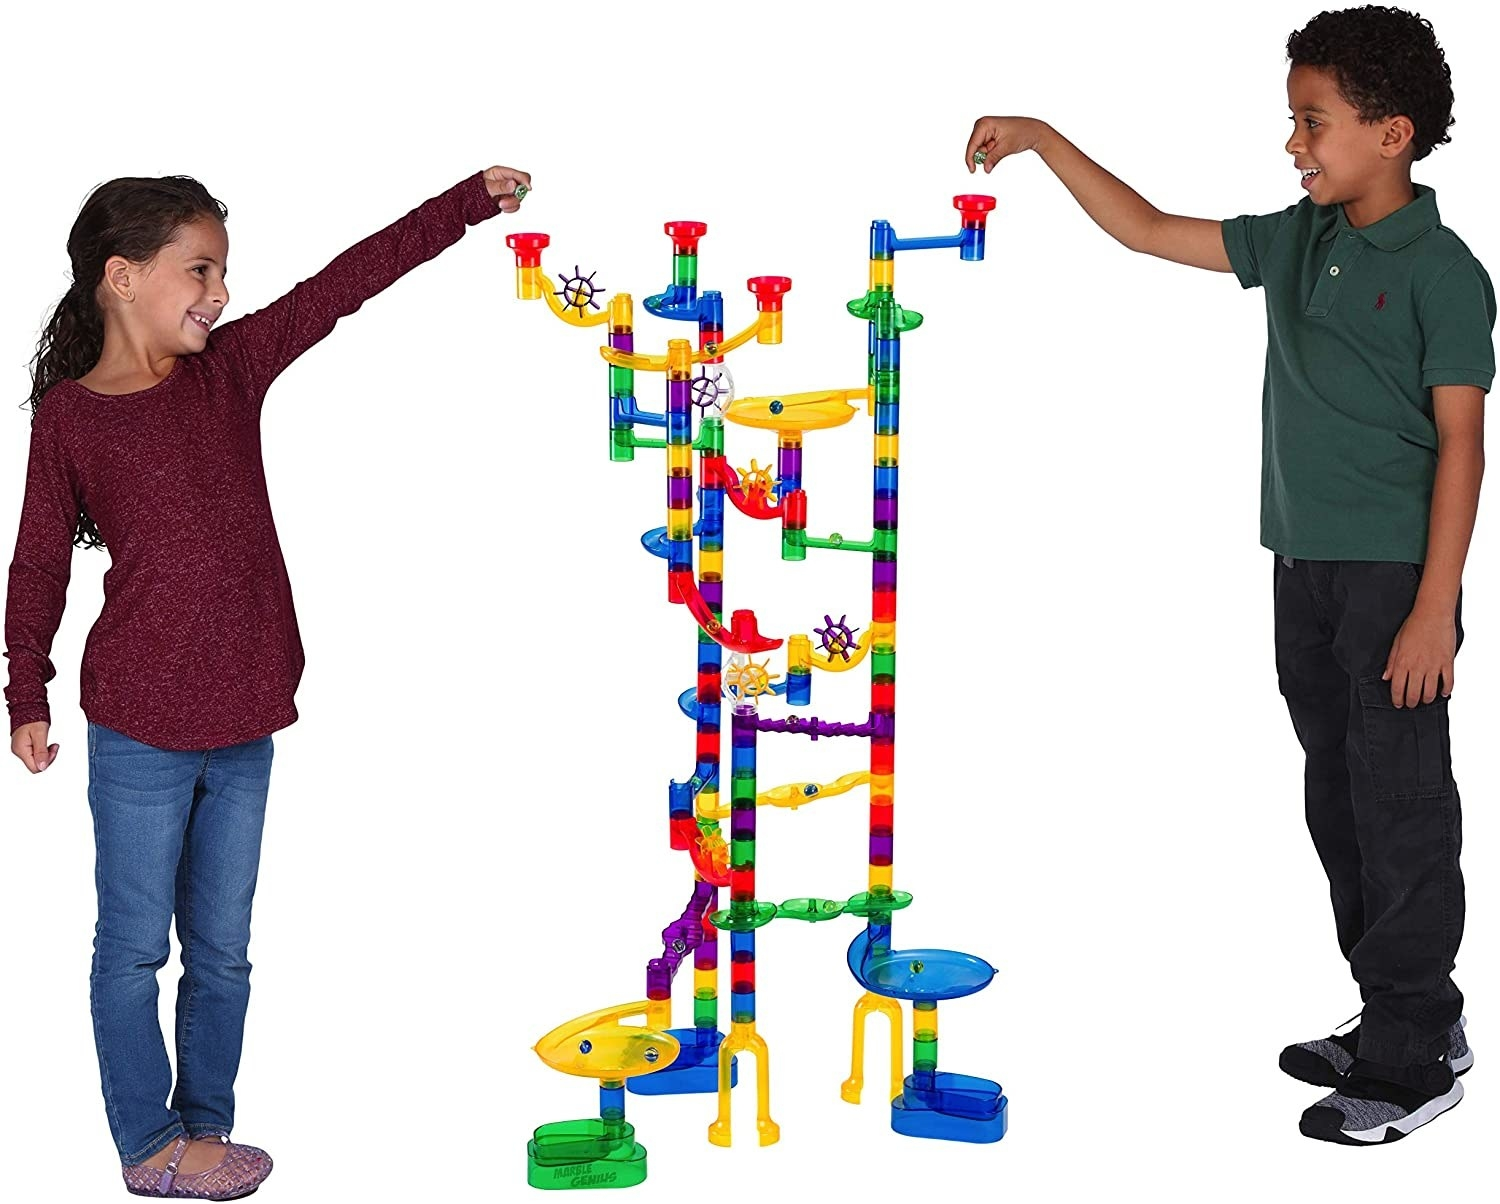 Two kids get ready to race marbles on the marble run set they built.